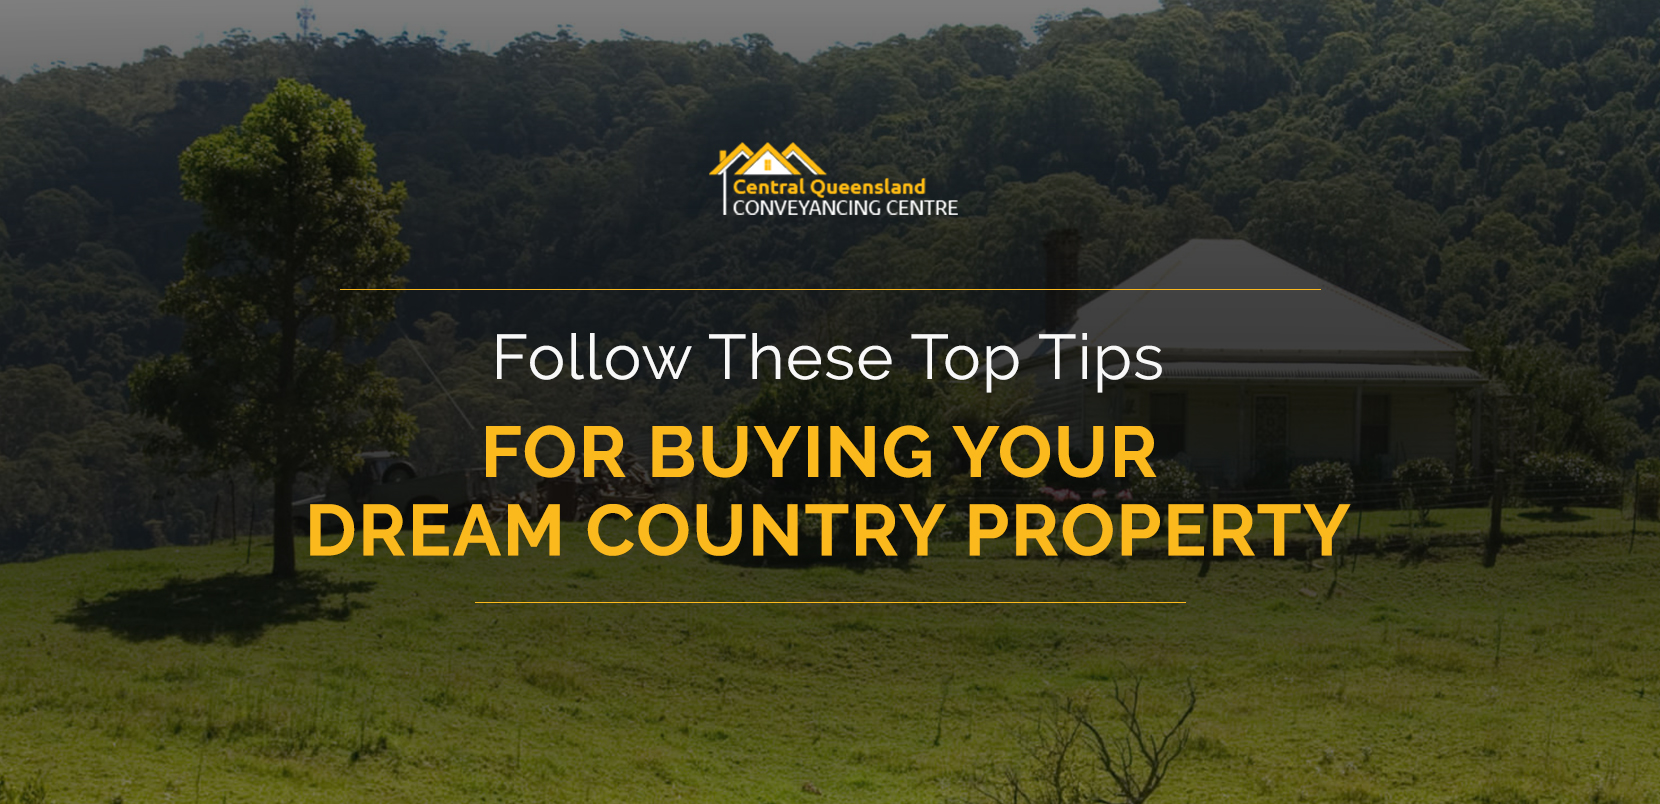 Follow-These-Top-Tips-for-Buying-Your-Dream-Country-Property-Conveyancing